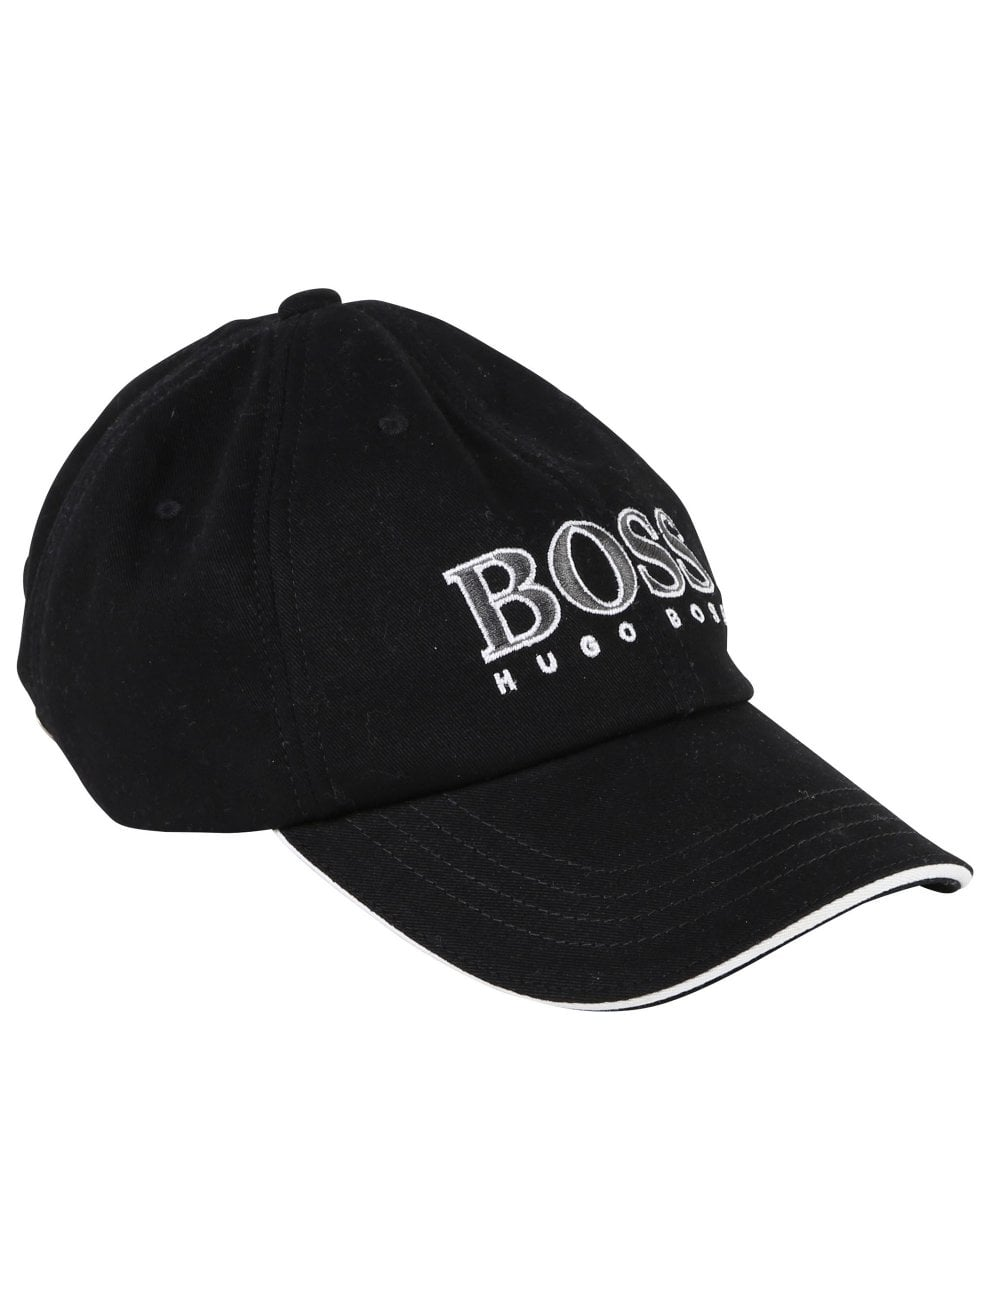 Hugo Boss Kids Cap Boys Hat with Adjustable Back